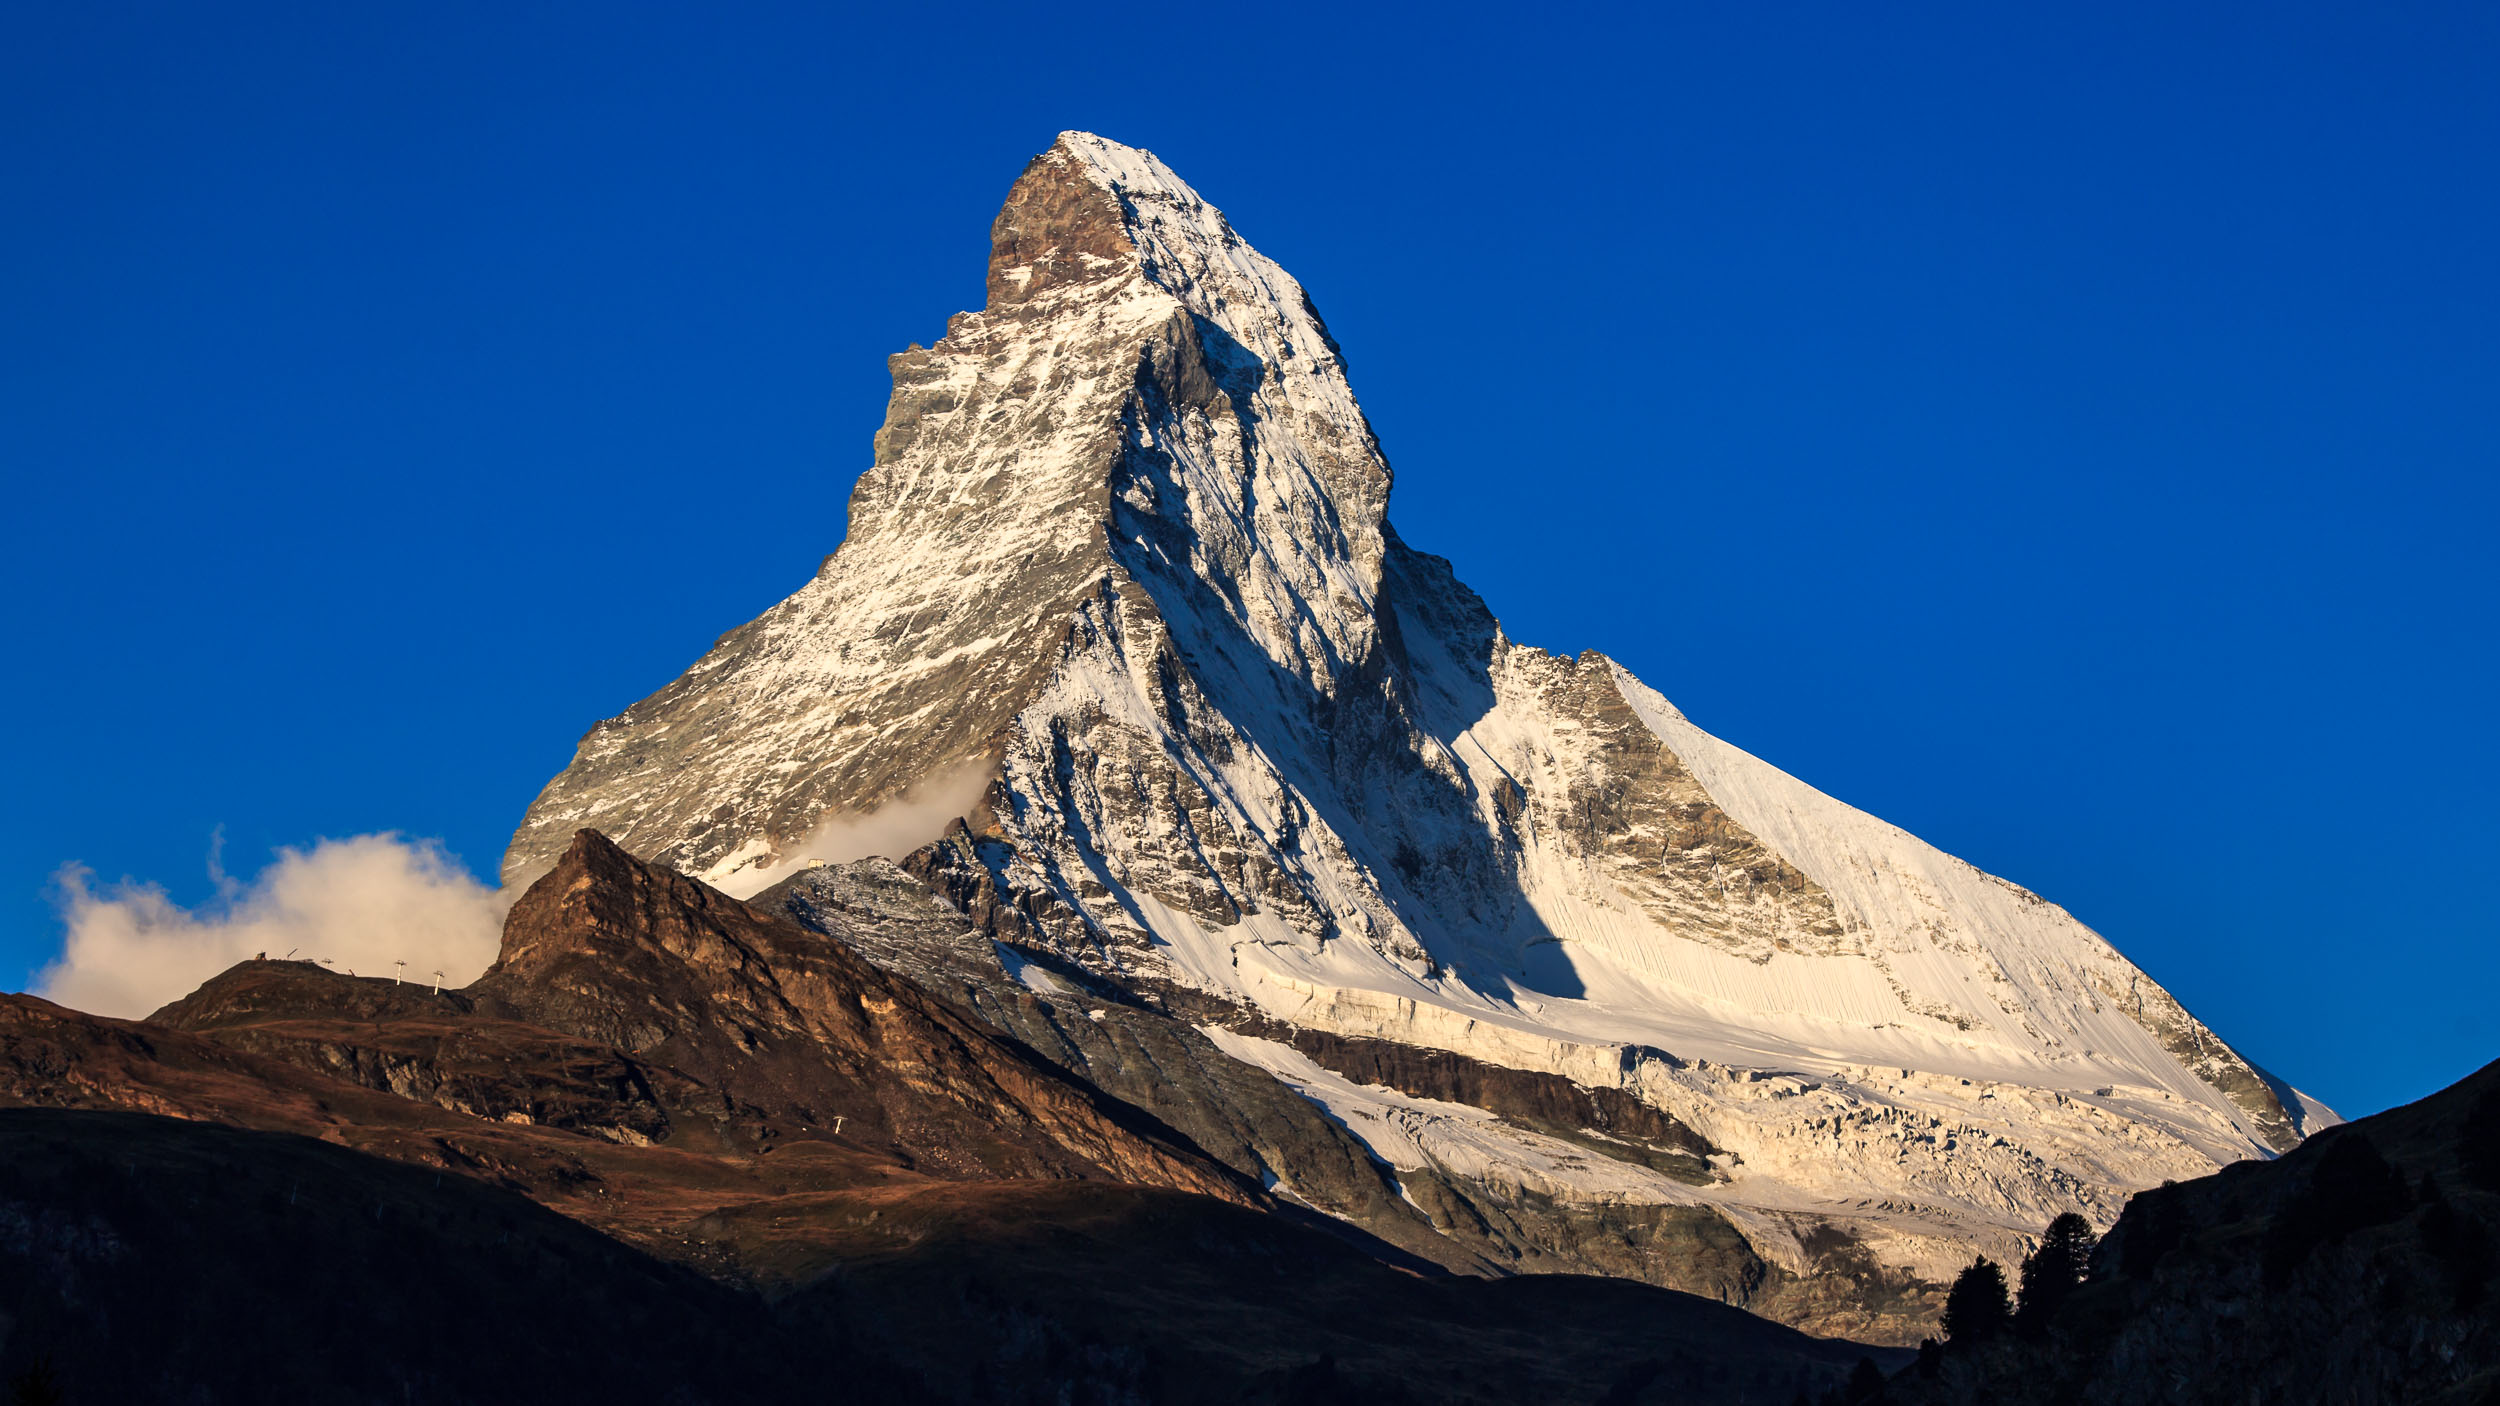 Matterhorn - Zermatt, Switzerland